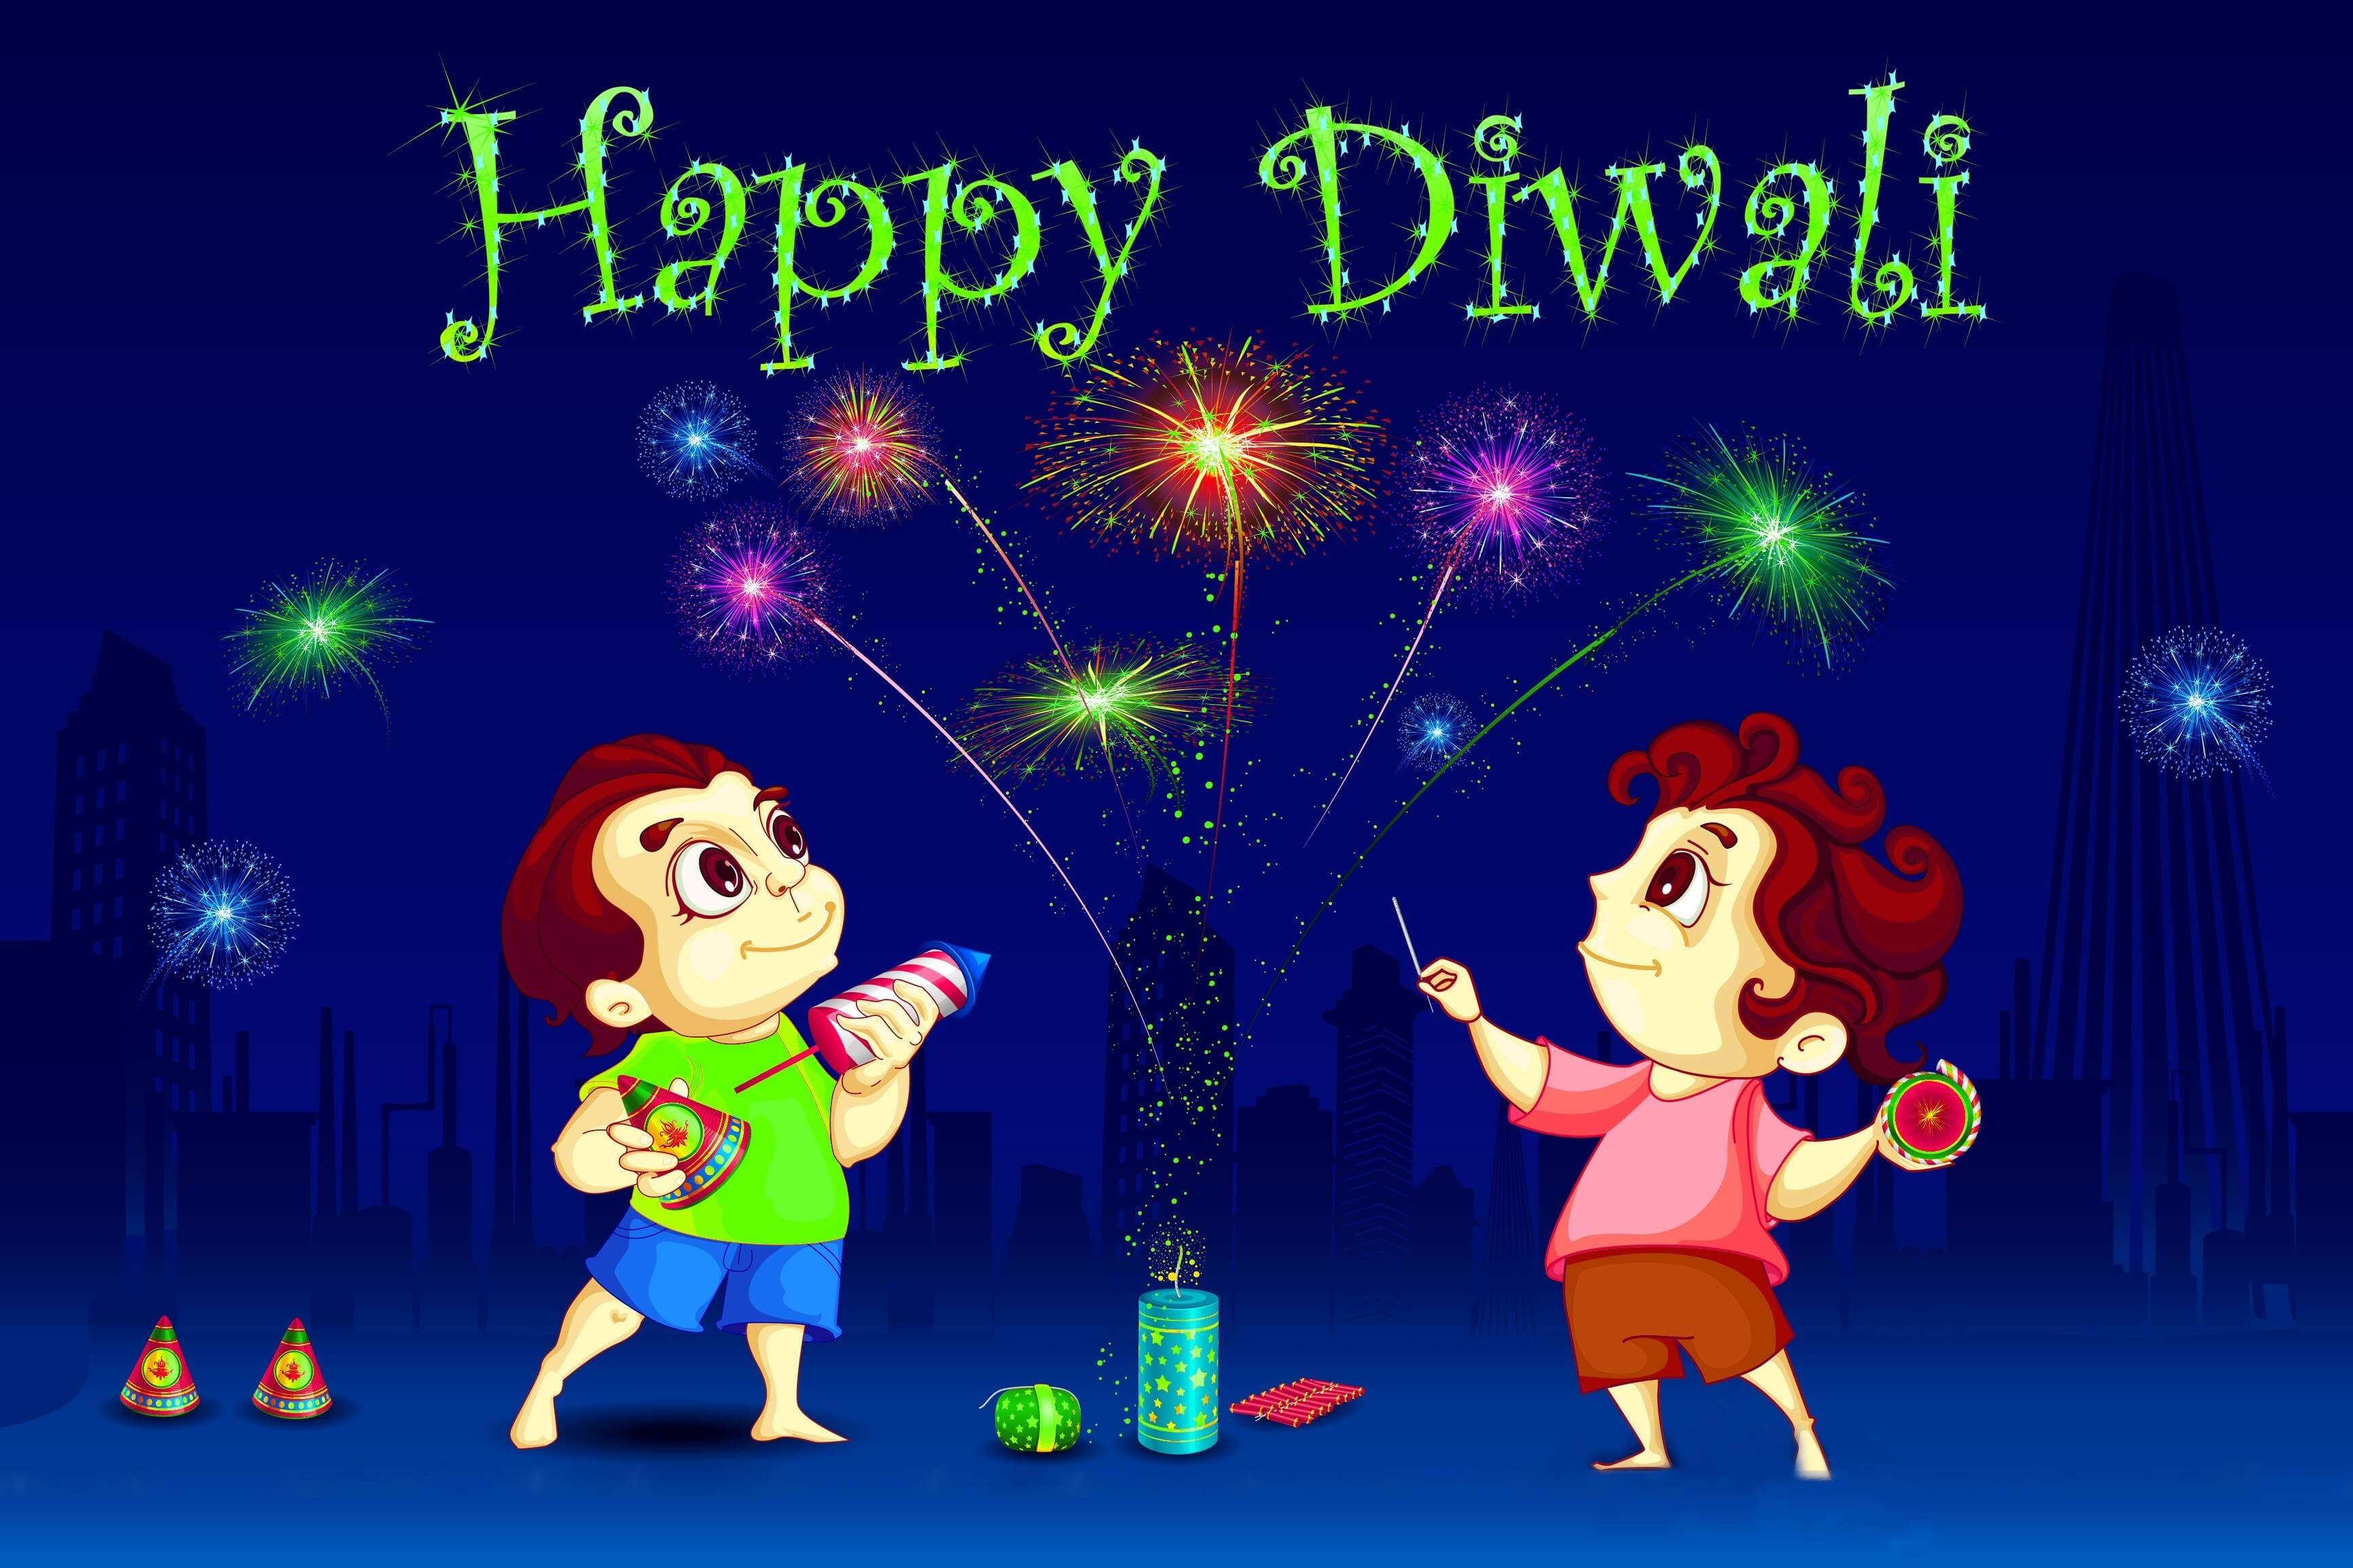 diwali wallpapers free download